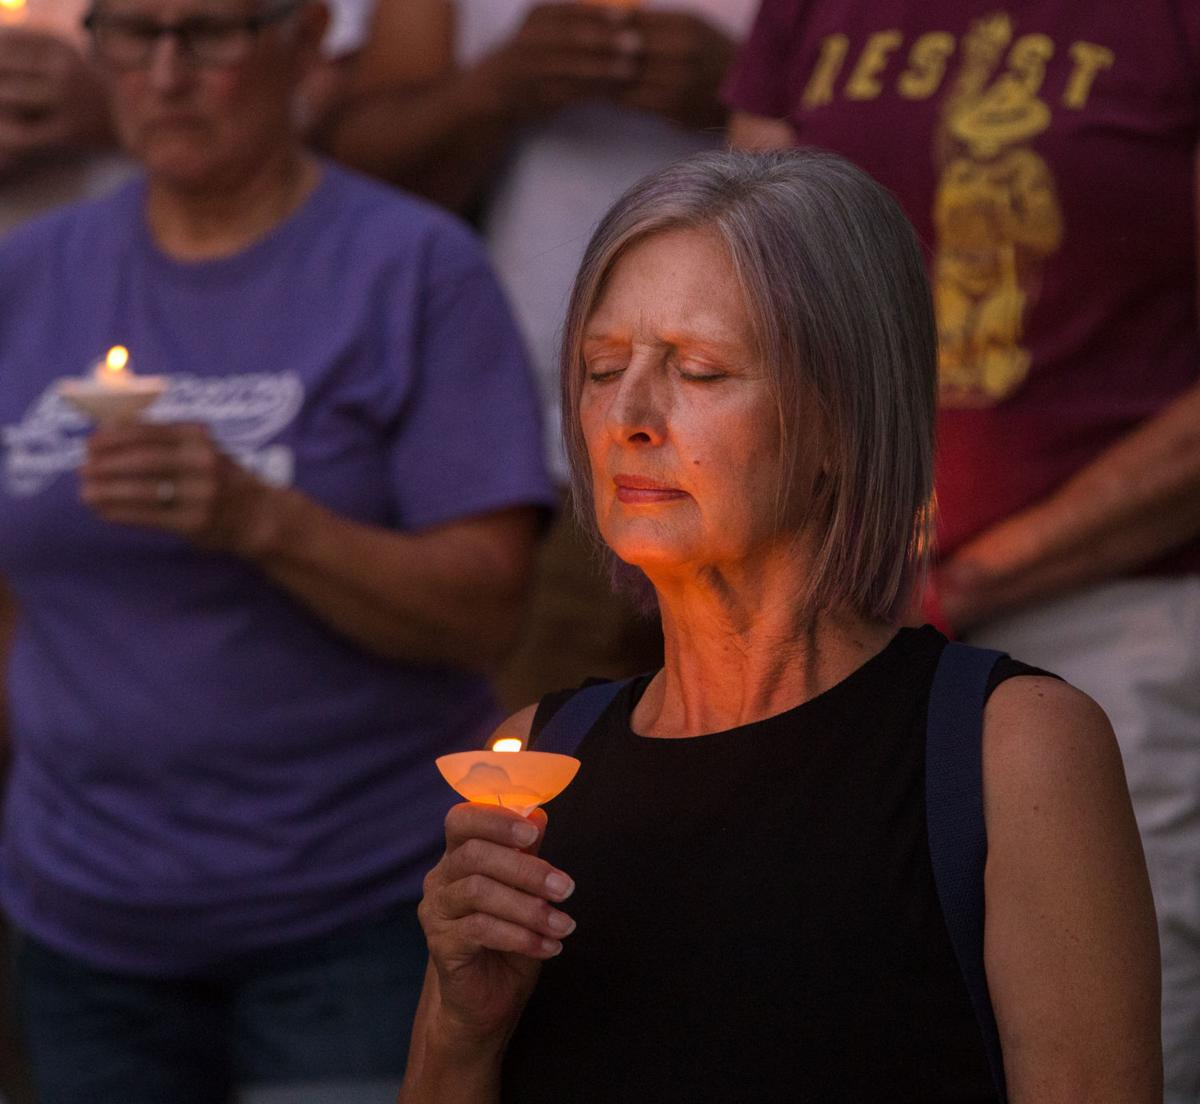 Mass shootings send ripples nationwide